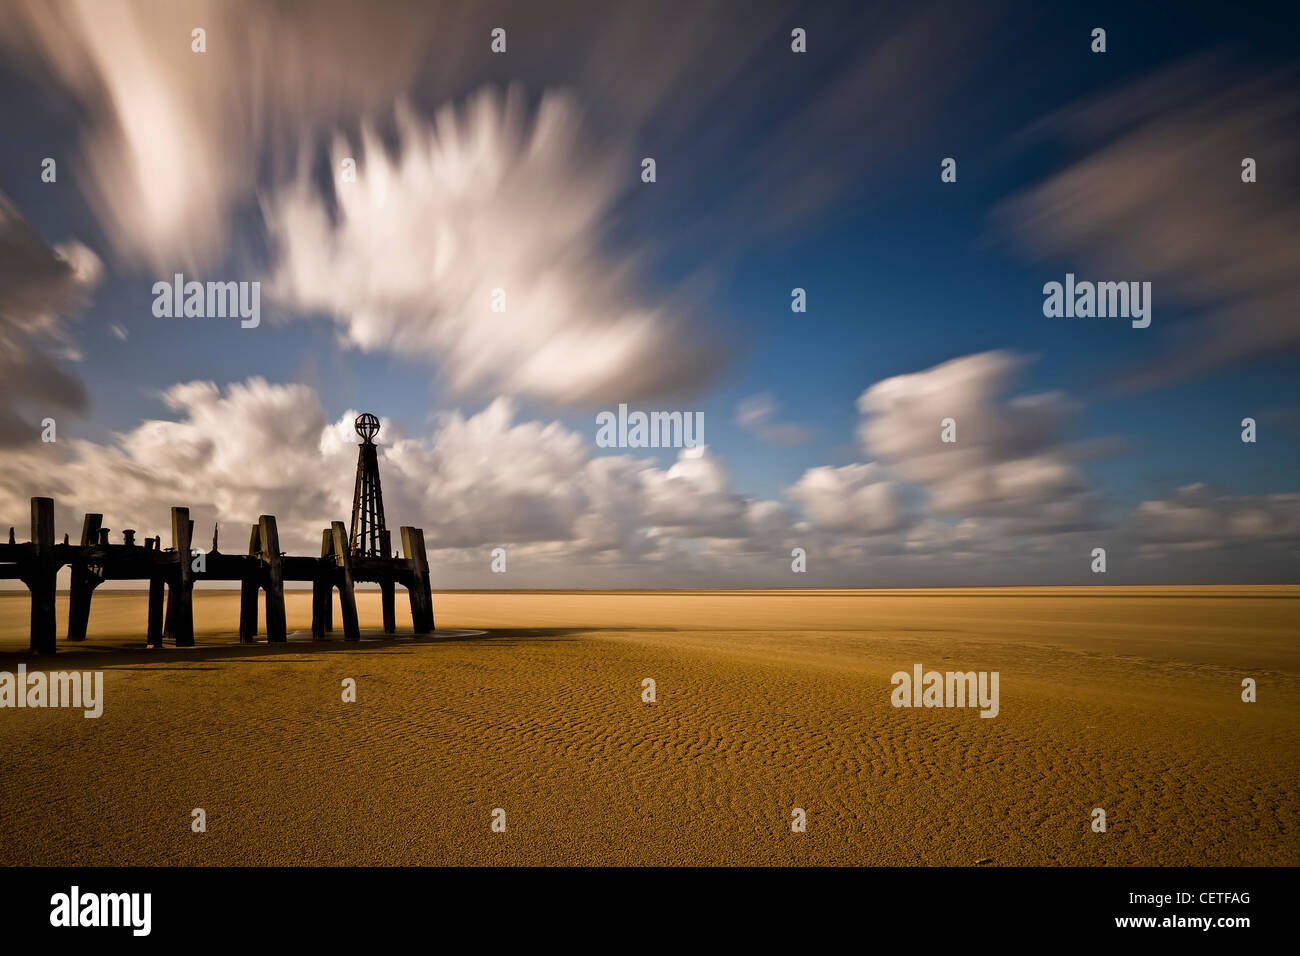 The end of an old wooden jetty at Lytham Saint Annes beach. - Stock Image